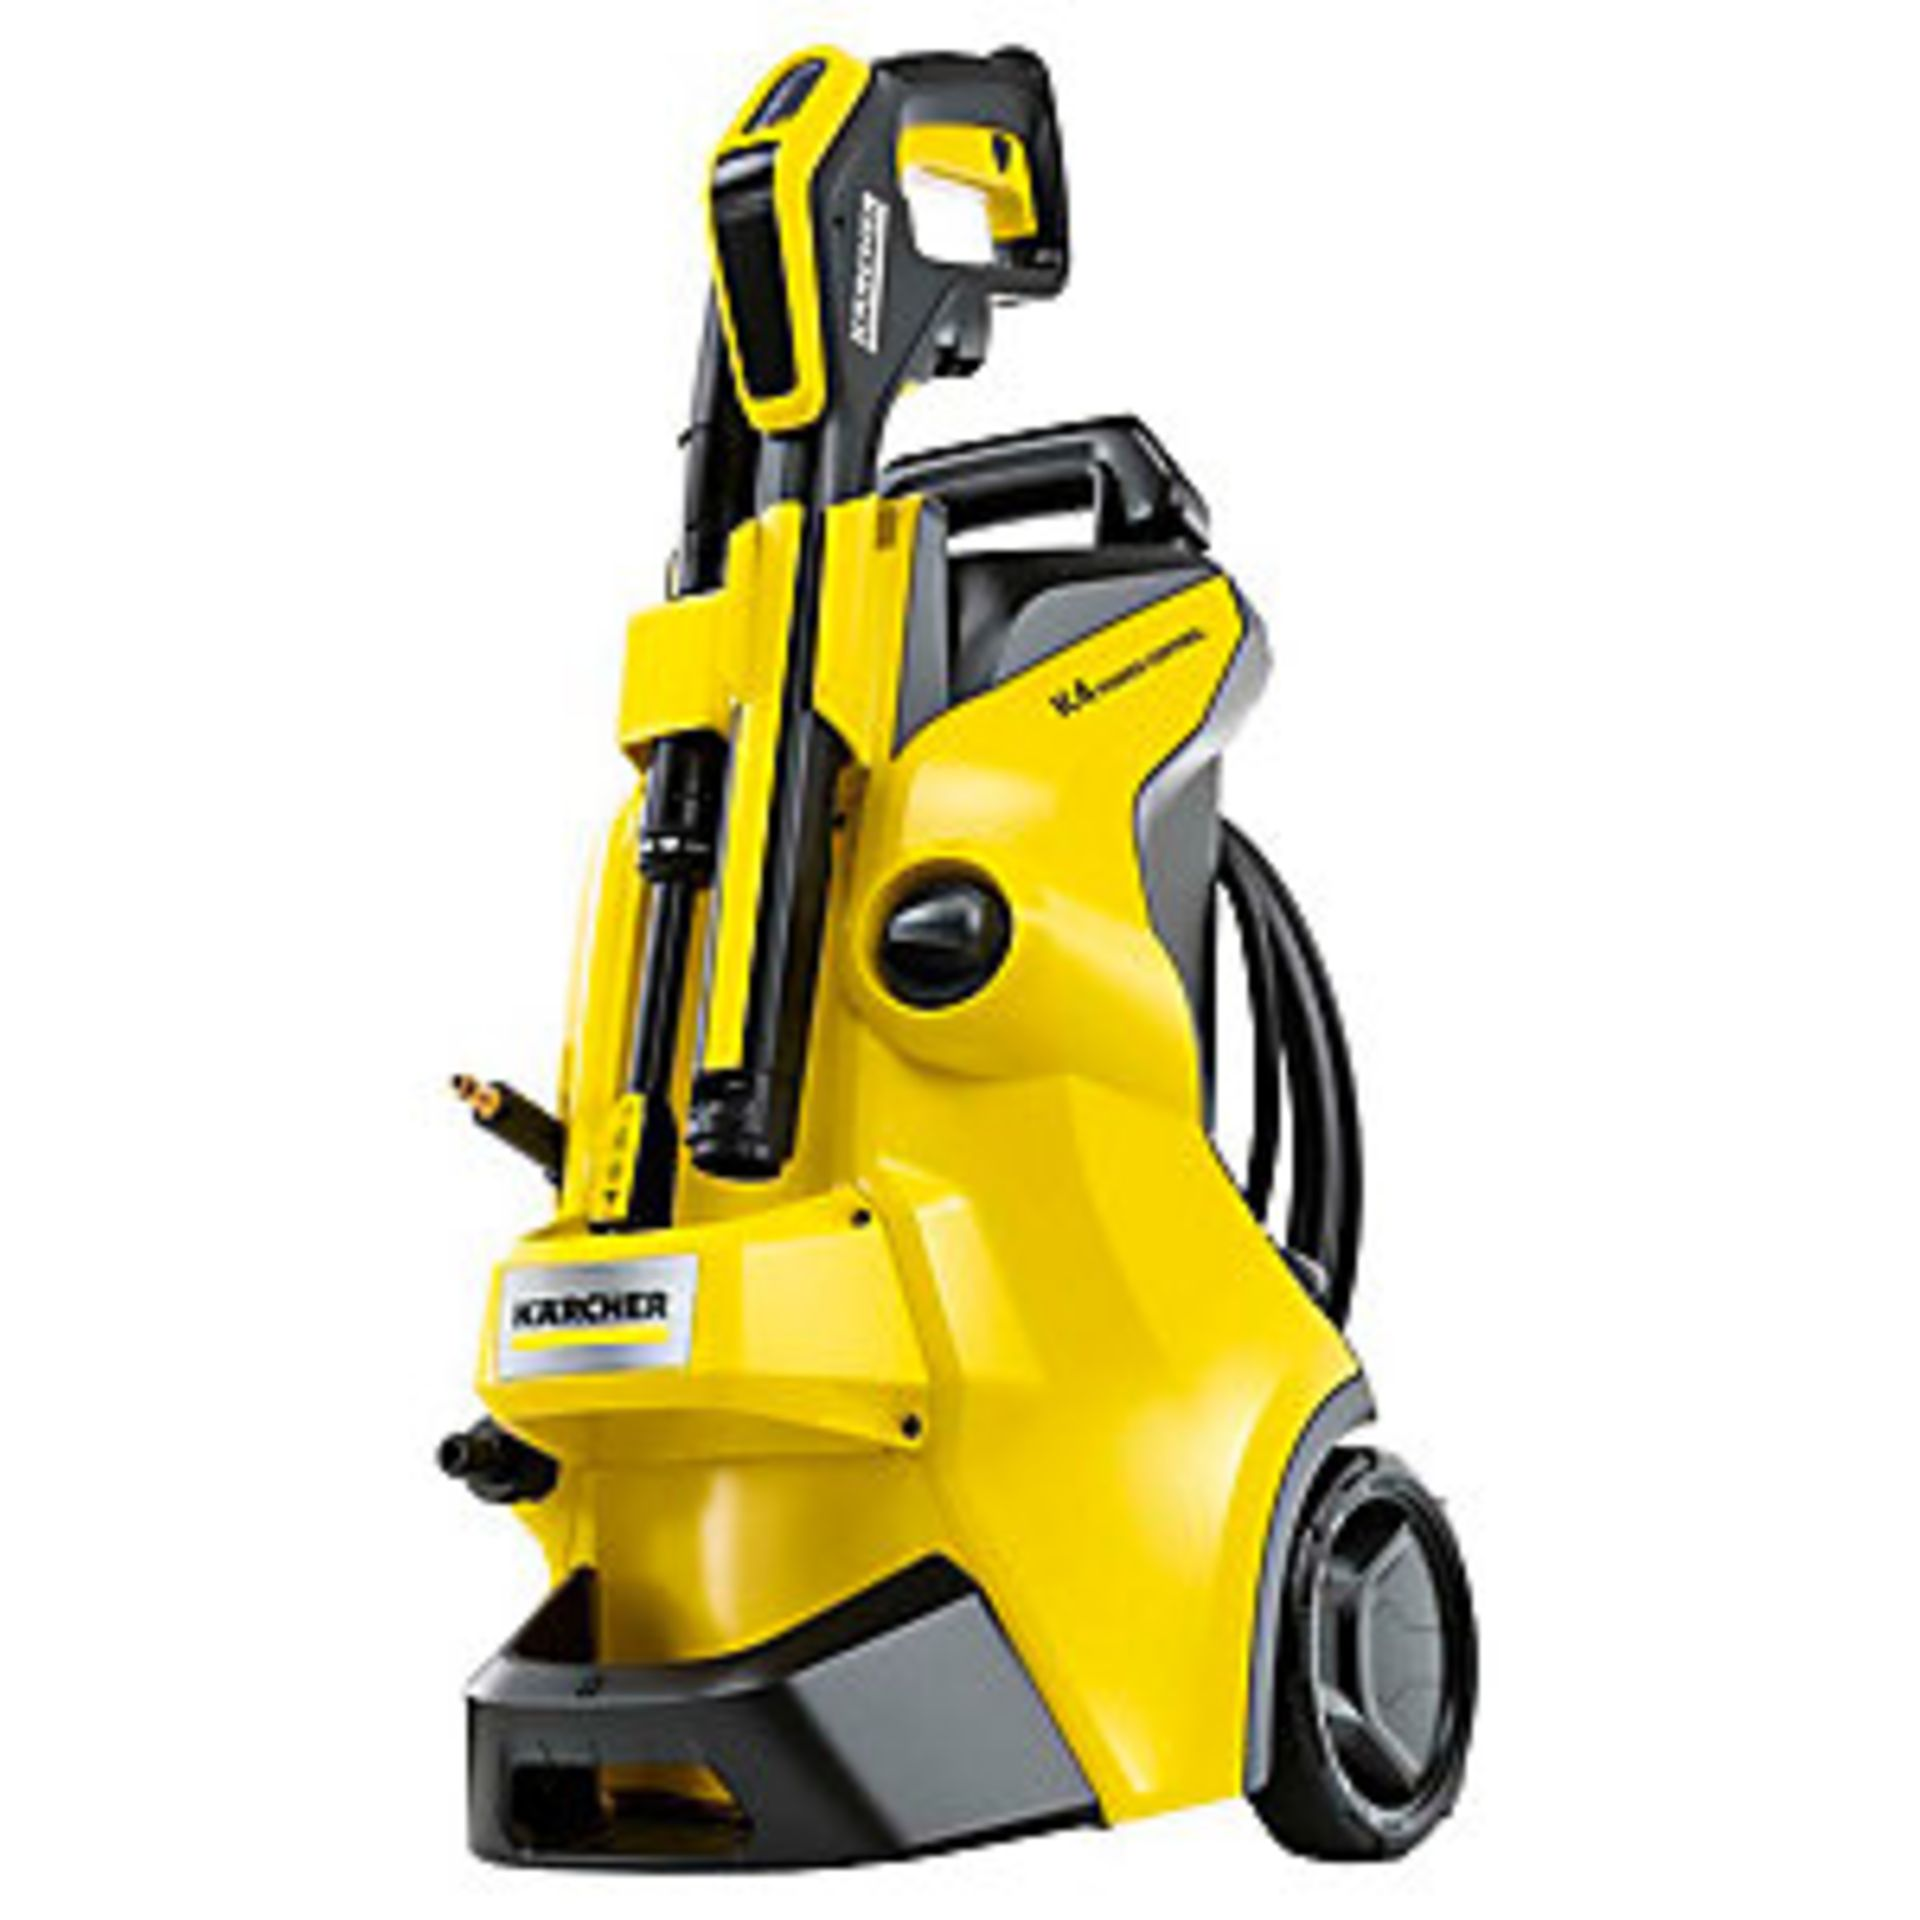 (P2) 1x Karcher K4 Power Control High Pressure Washer. RRP £199.99. - Image 2 of 3